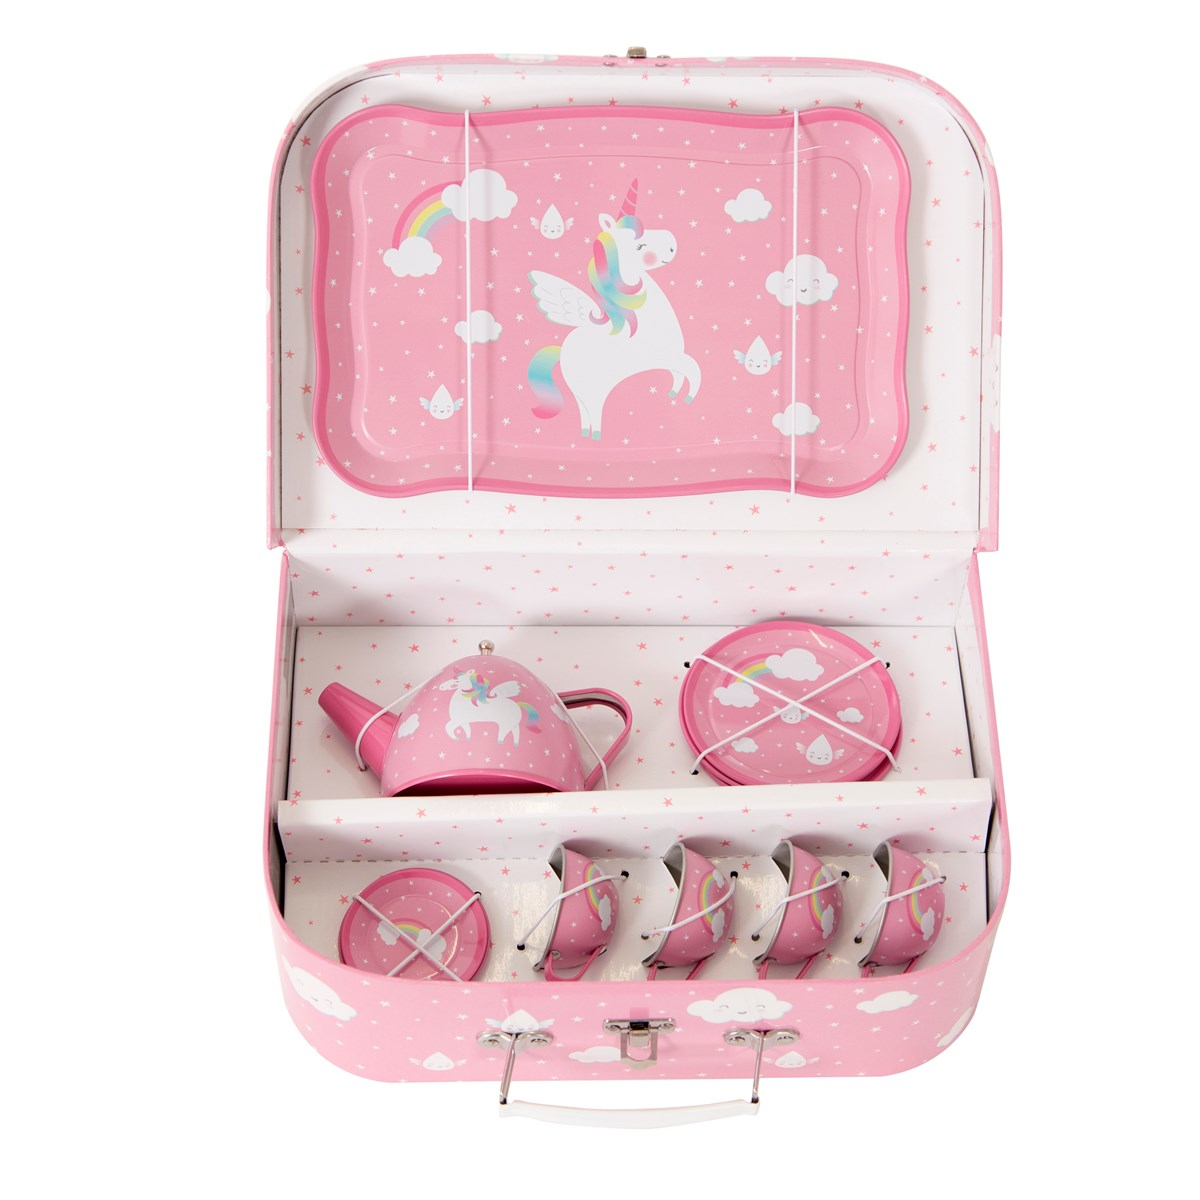 RAINBOW UNICORN TIN TEA SET